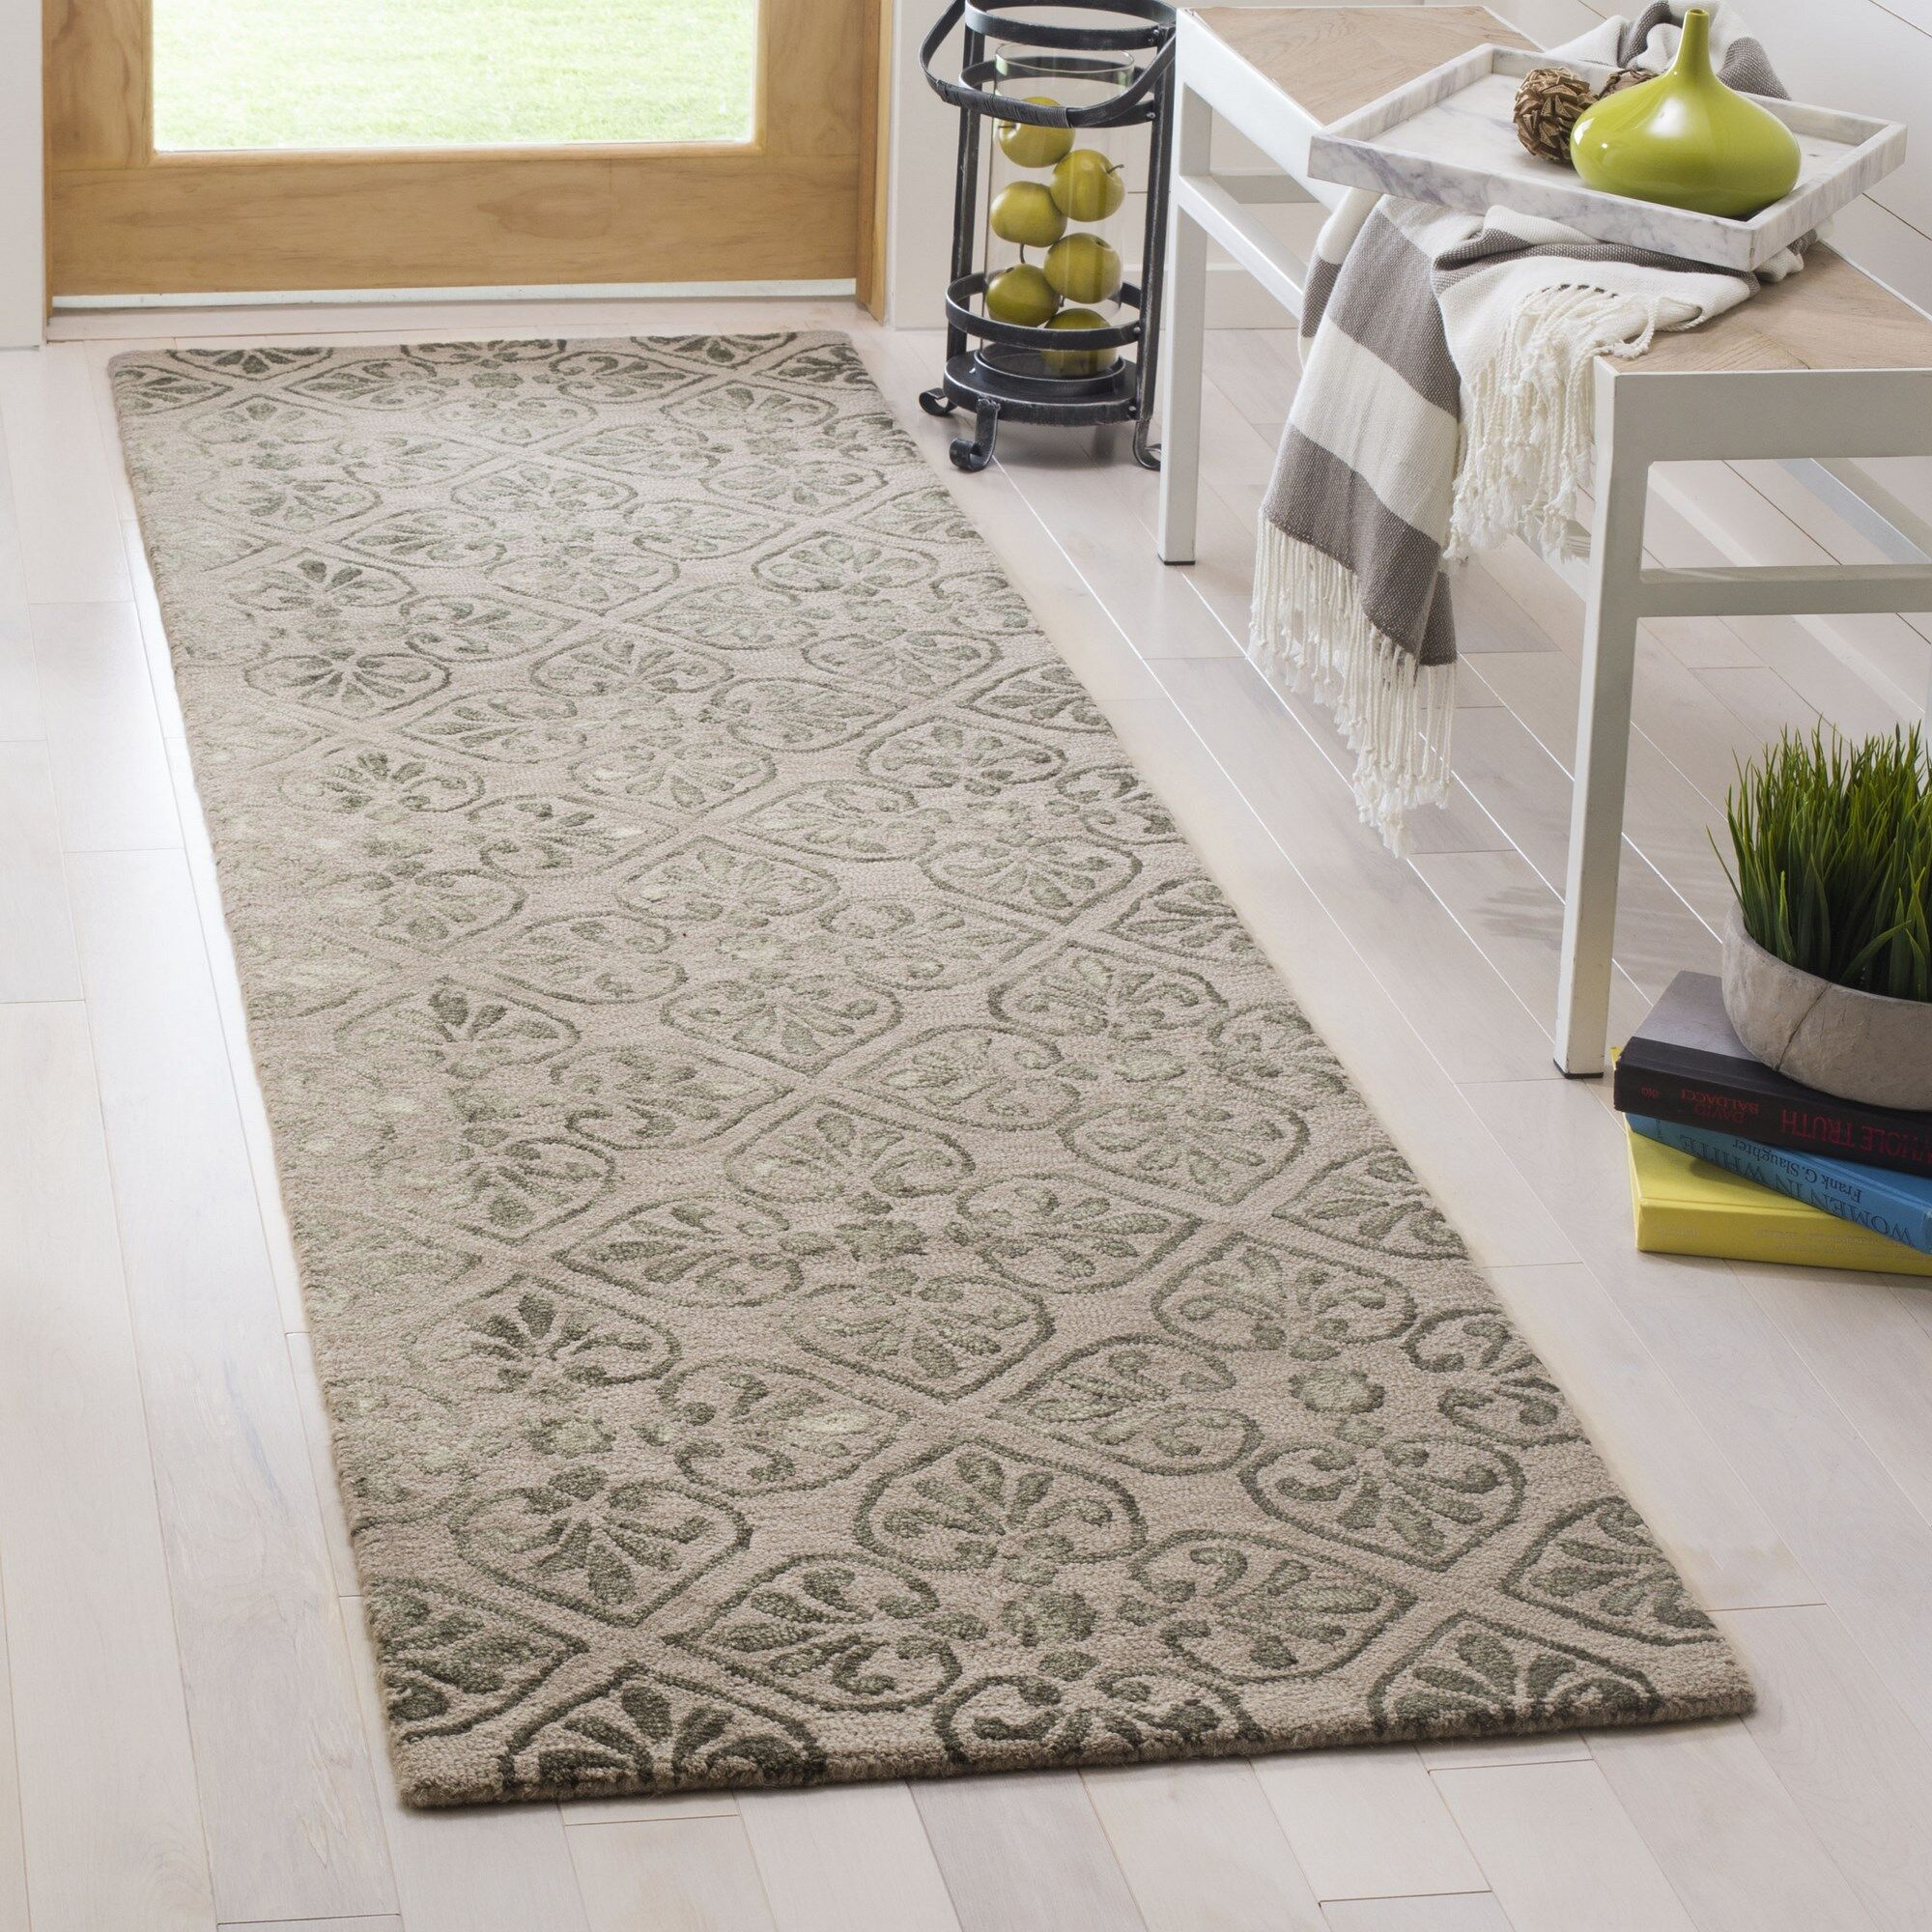 Edmeston Hand-Tufted Dark Beige Area Rug Rug Size: Runner 2'3